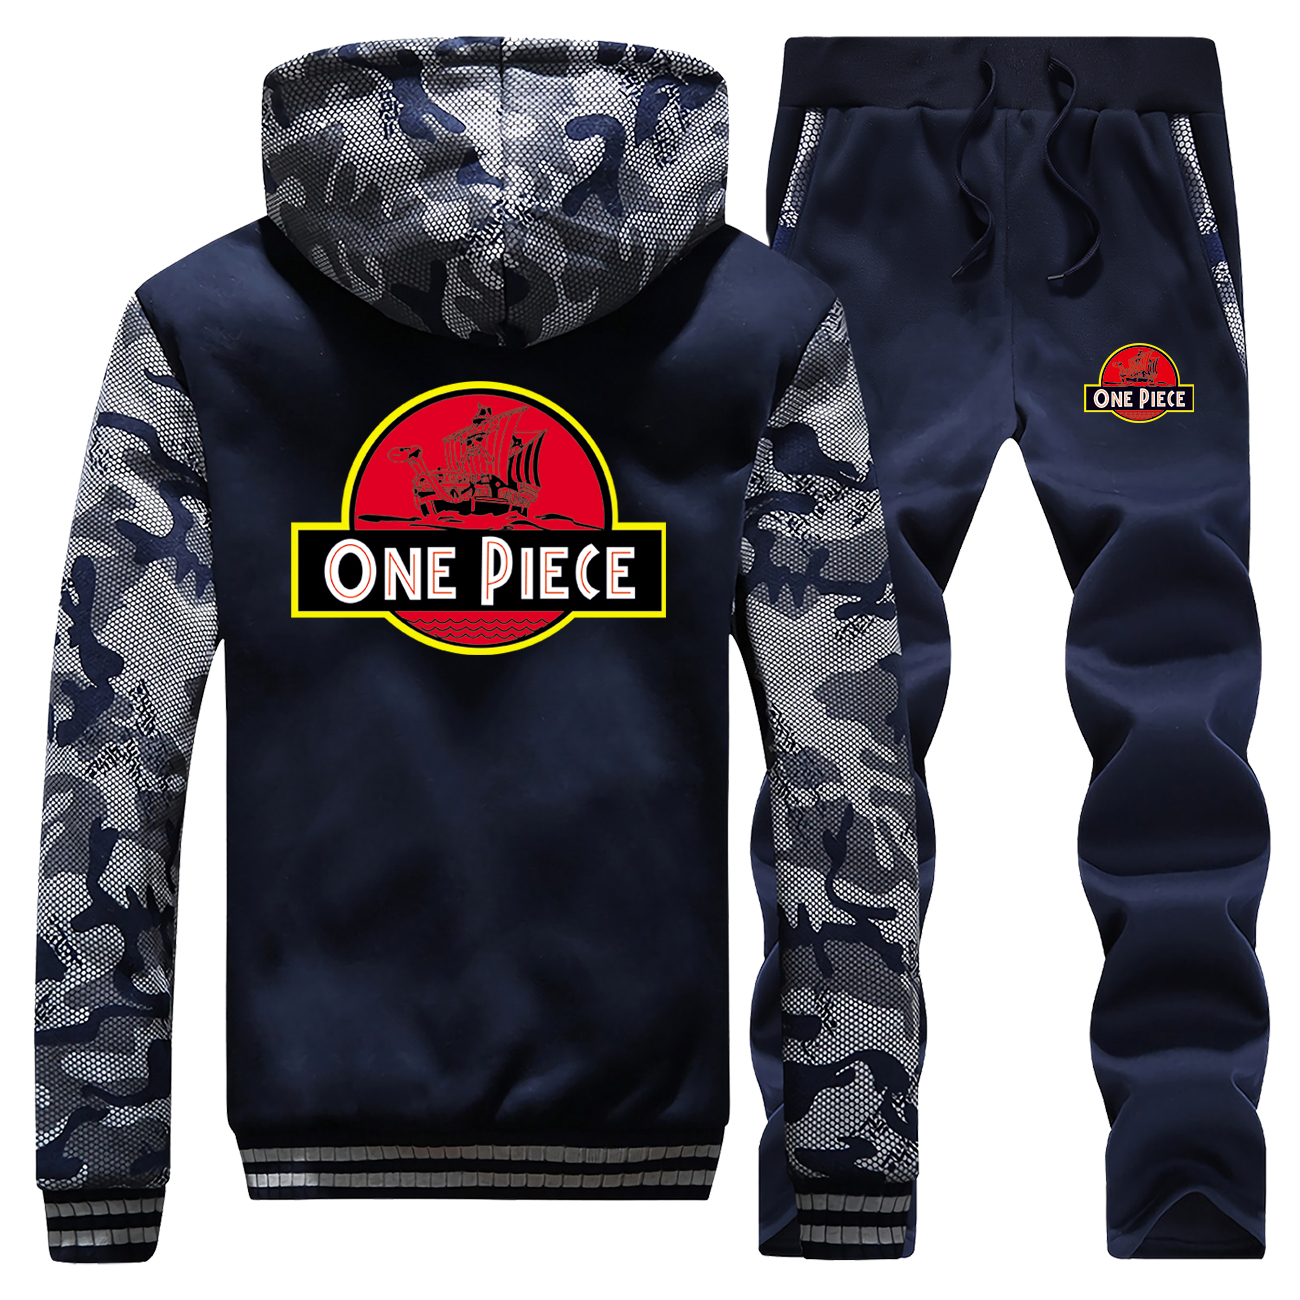 One Piece Print Camo Thick Tracksuit Japan Anime Men's Sportswear Men Jacket 2019 Winter Male Set Fleece Warm Military Sweatsuit